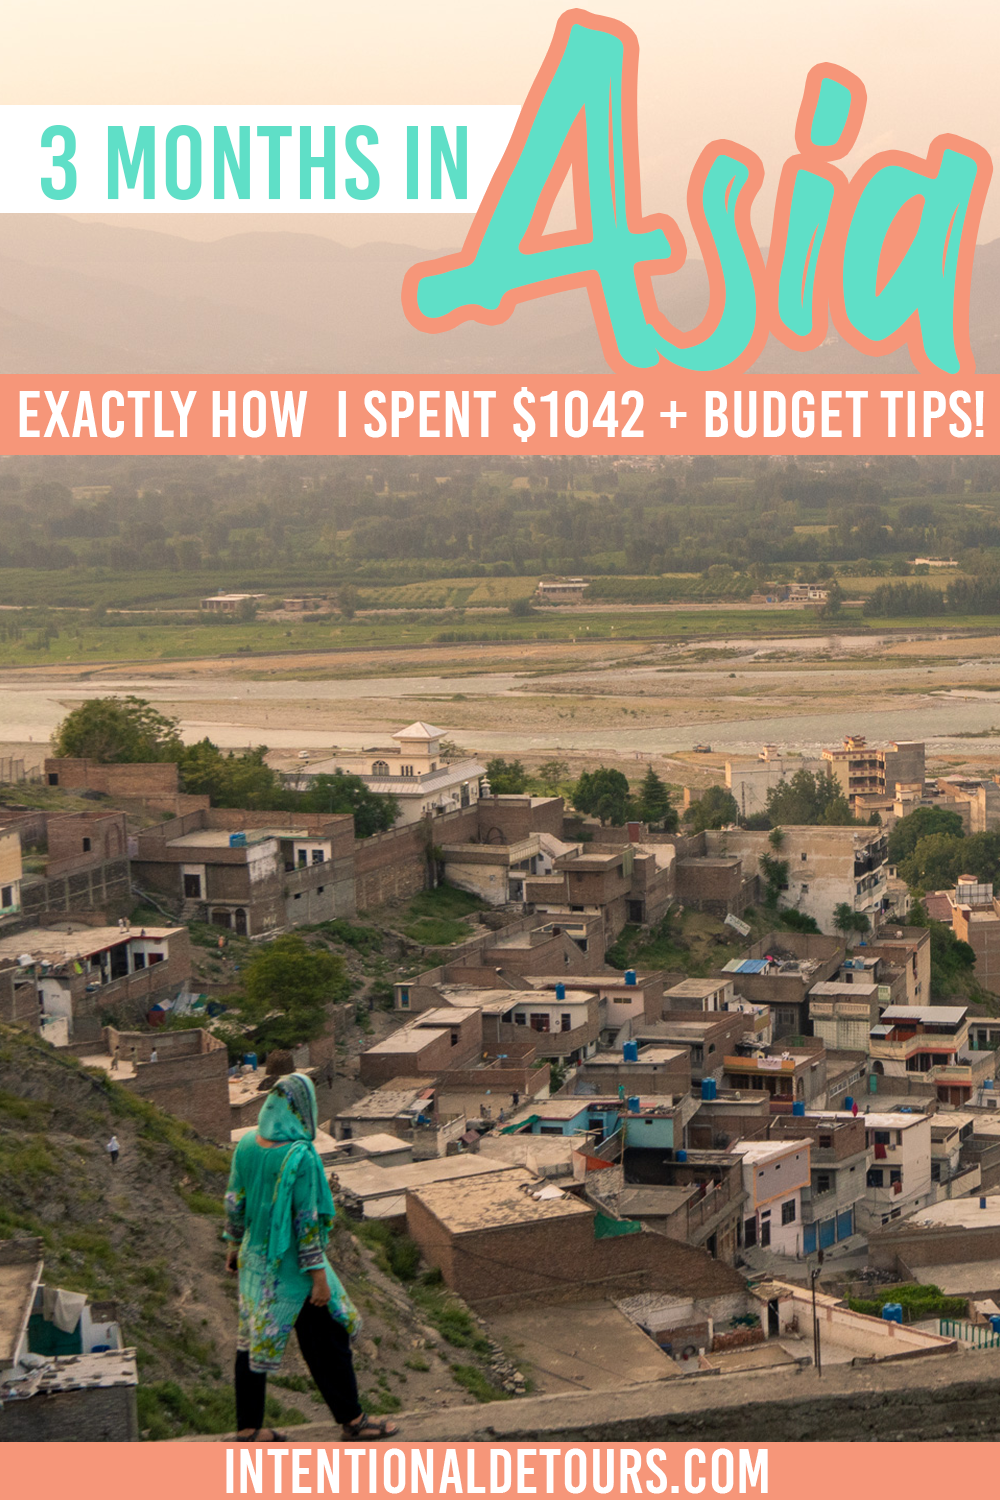 Planning to backpack/ budget travel South Asia? Here's exactly how much 3 months of travel cost in India and Pakistan. Includes our daily expenses, average daily budget, and recommendations for sticking to this 3 month budget on your Asia backpacking trip. #budgettravel #backpackingAsia #India #Pakistan